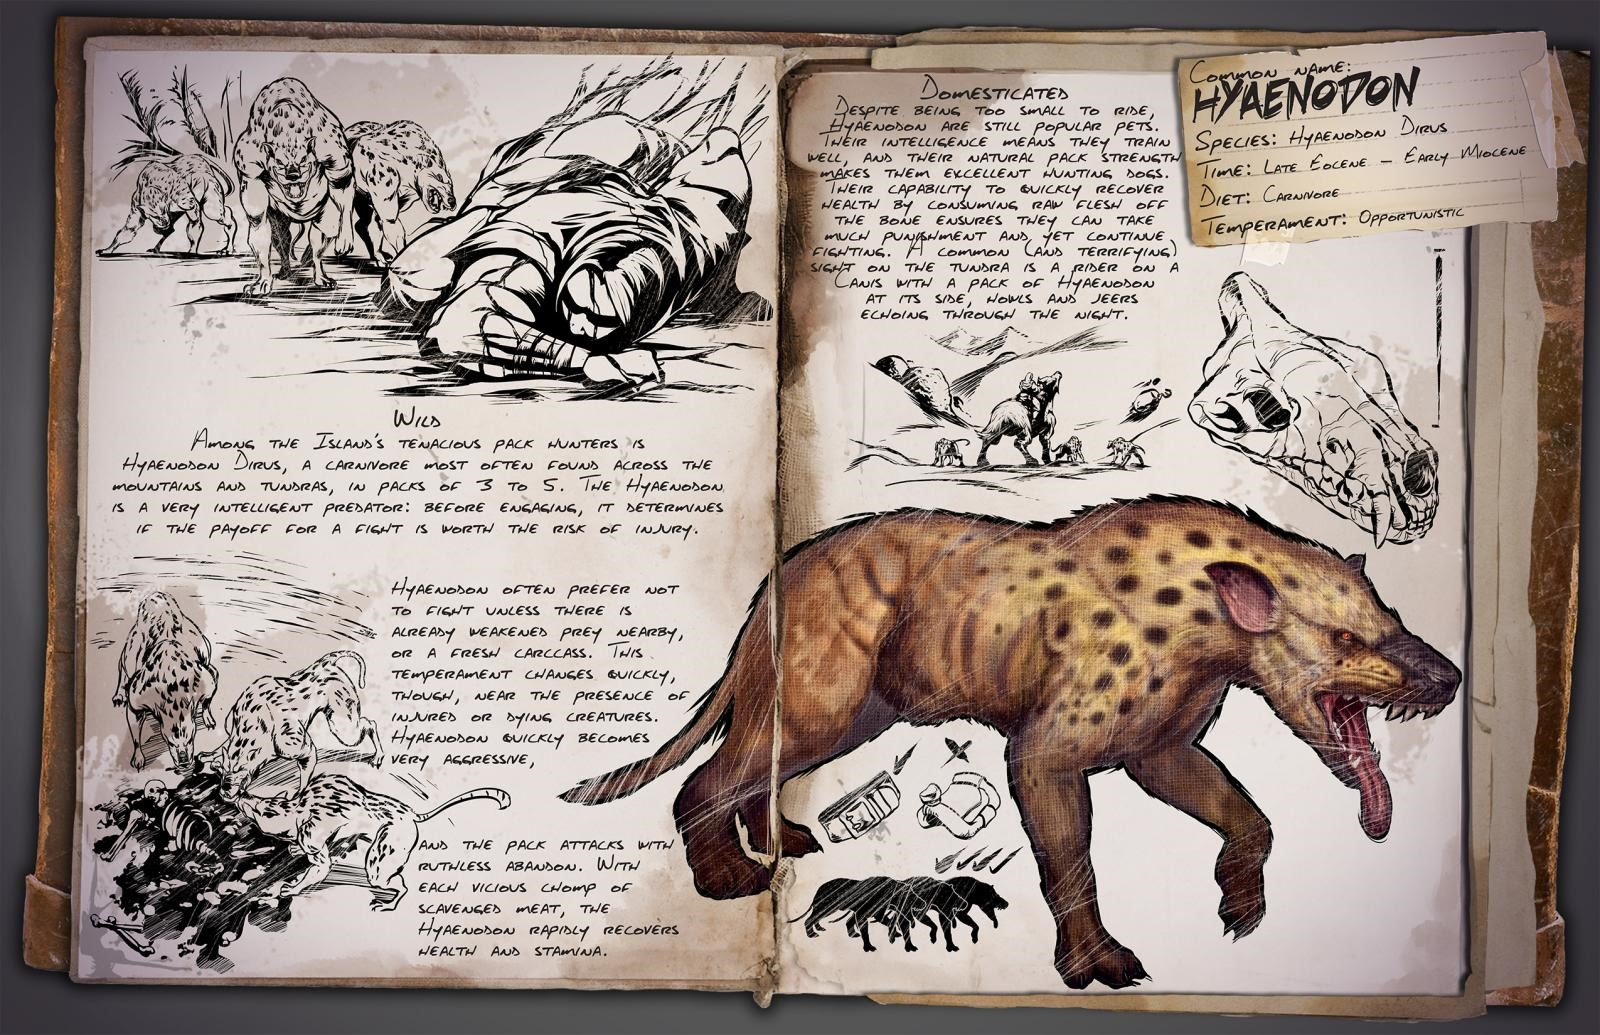 ARK: Survival Evolved - Hyaenodon